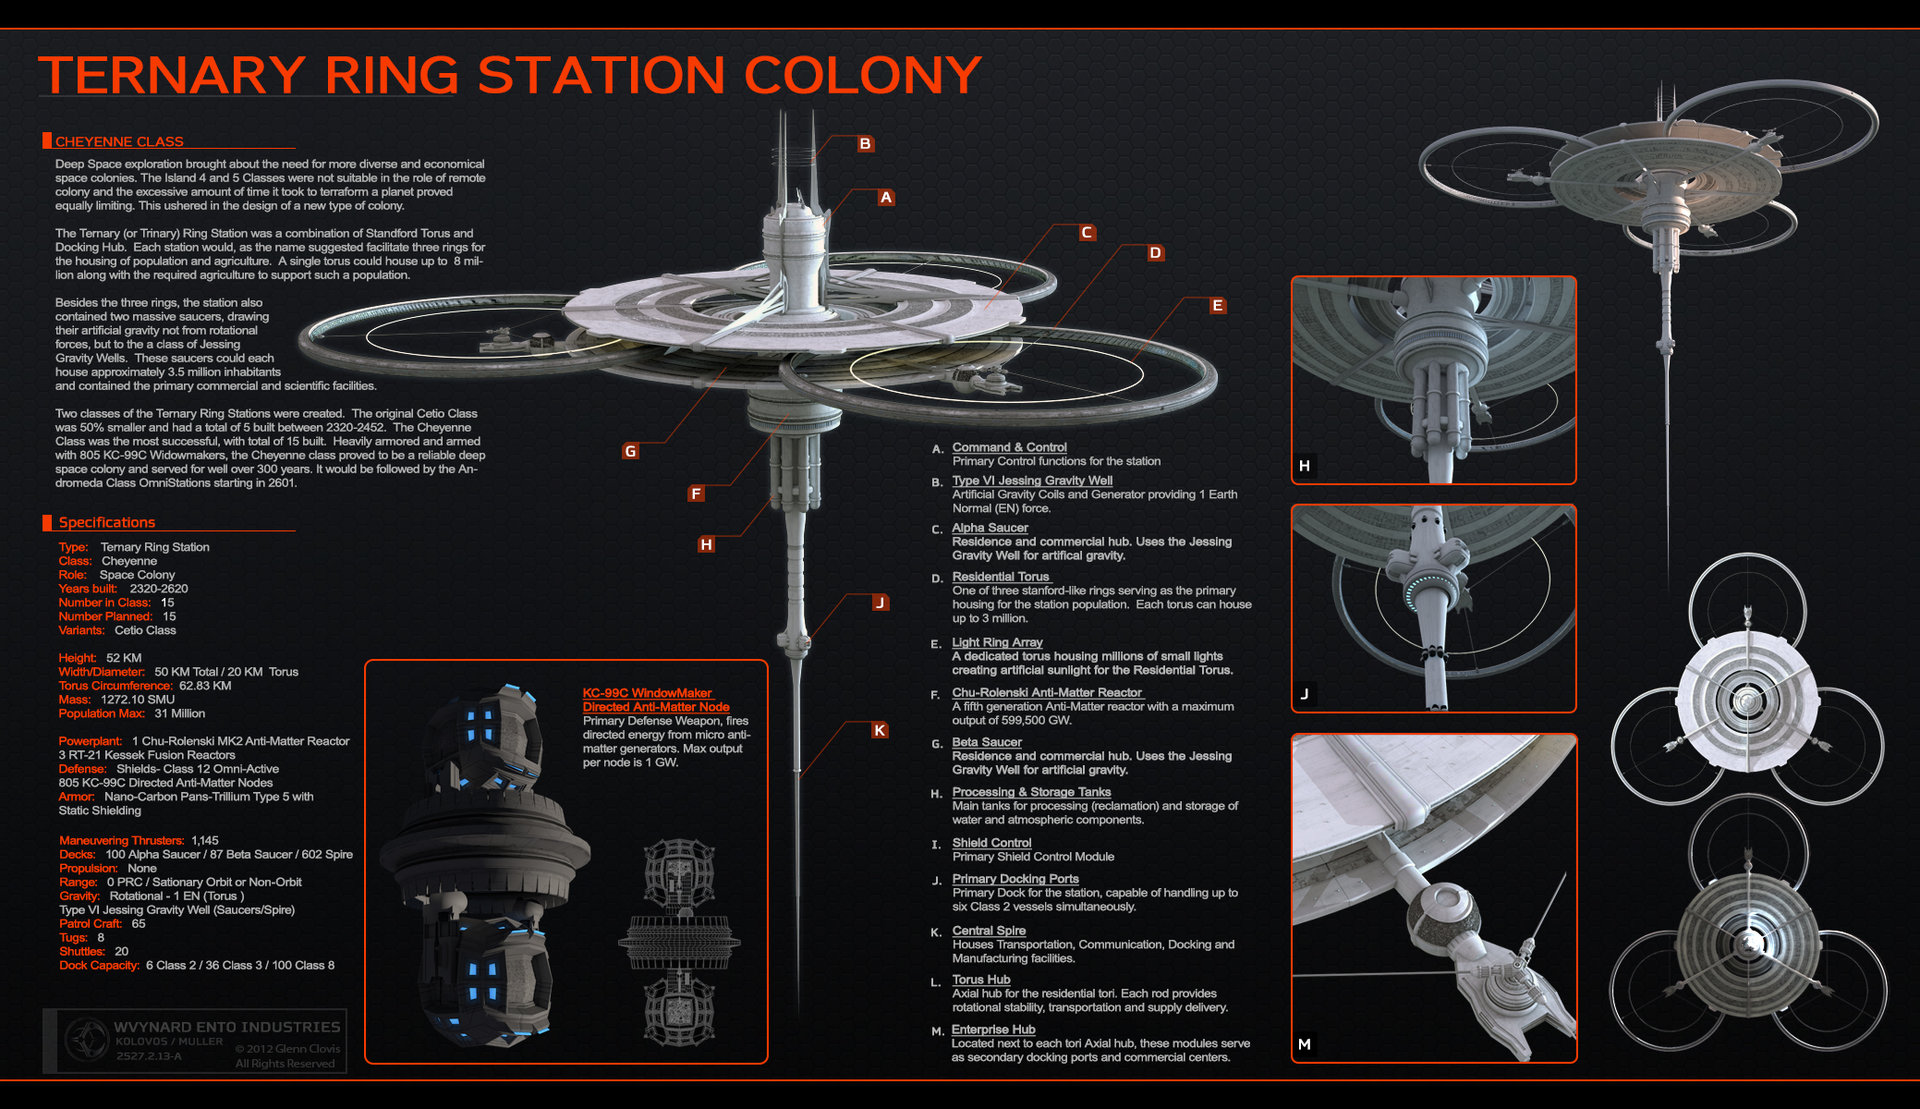 Glenn clovis spec sheet ternary ring station by glennclovis d5jj9iq